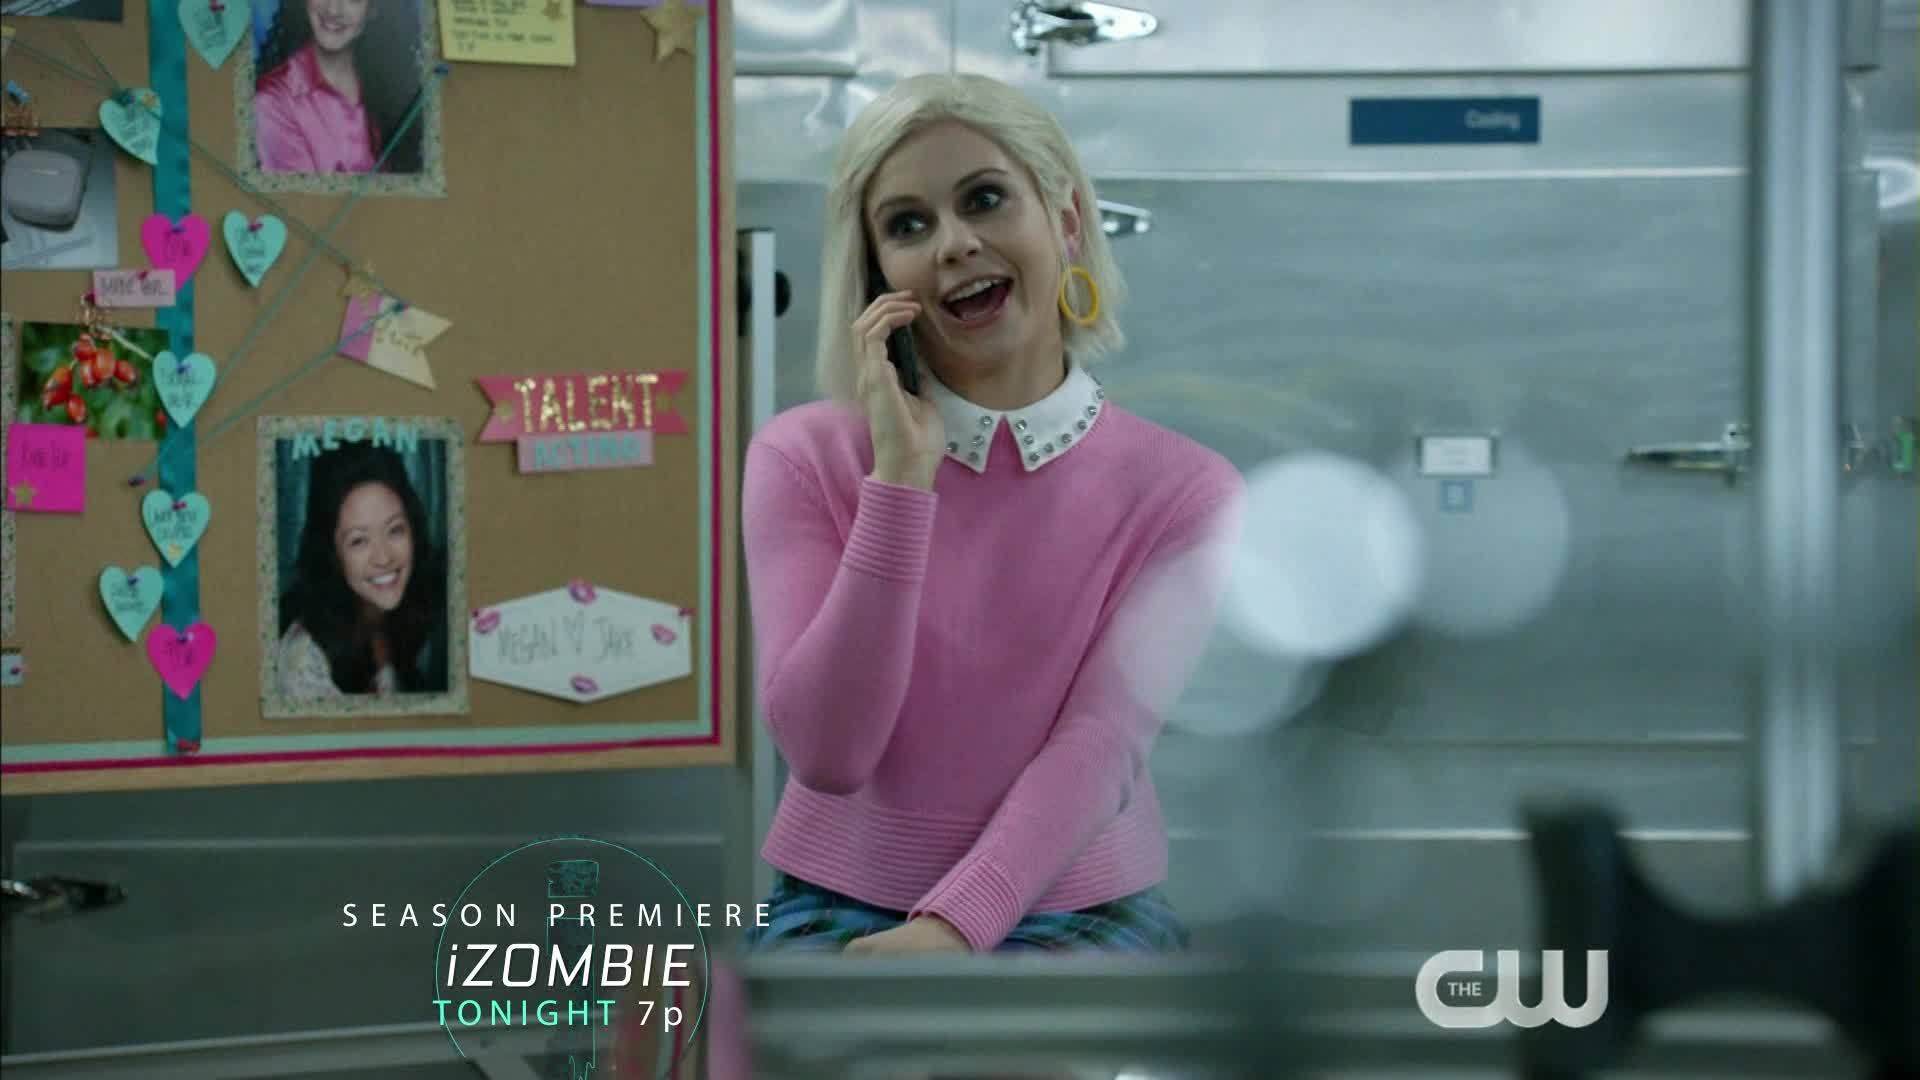 iZombie | Final Season Premieres TONIGHT